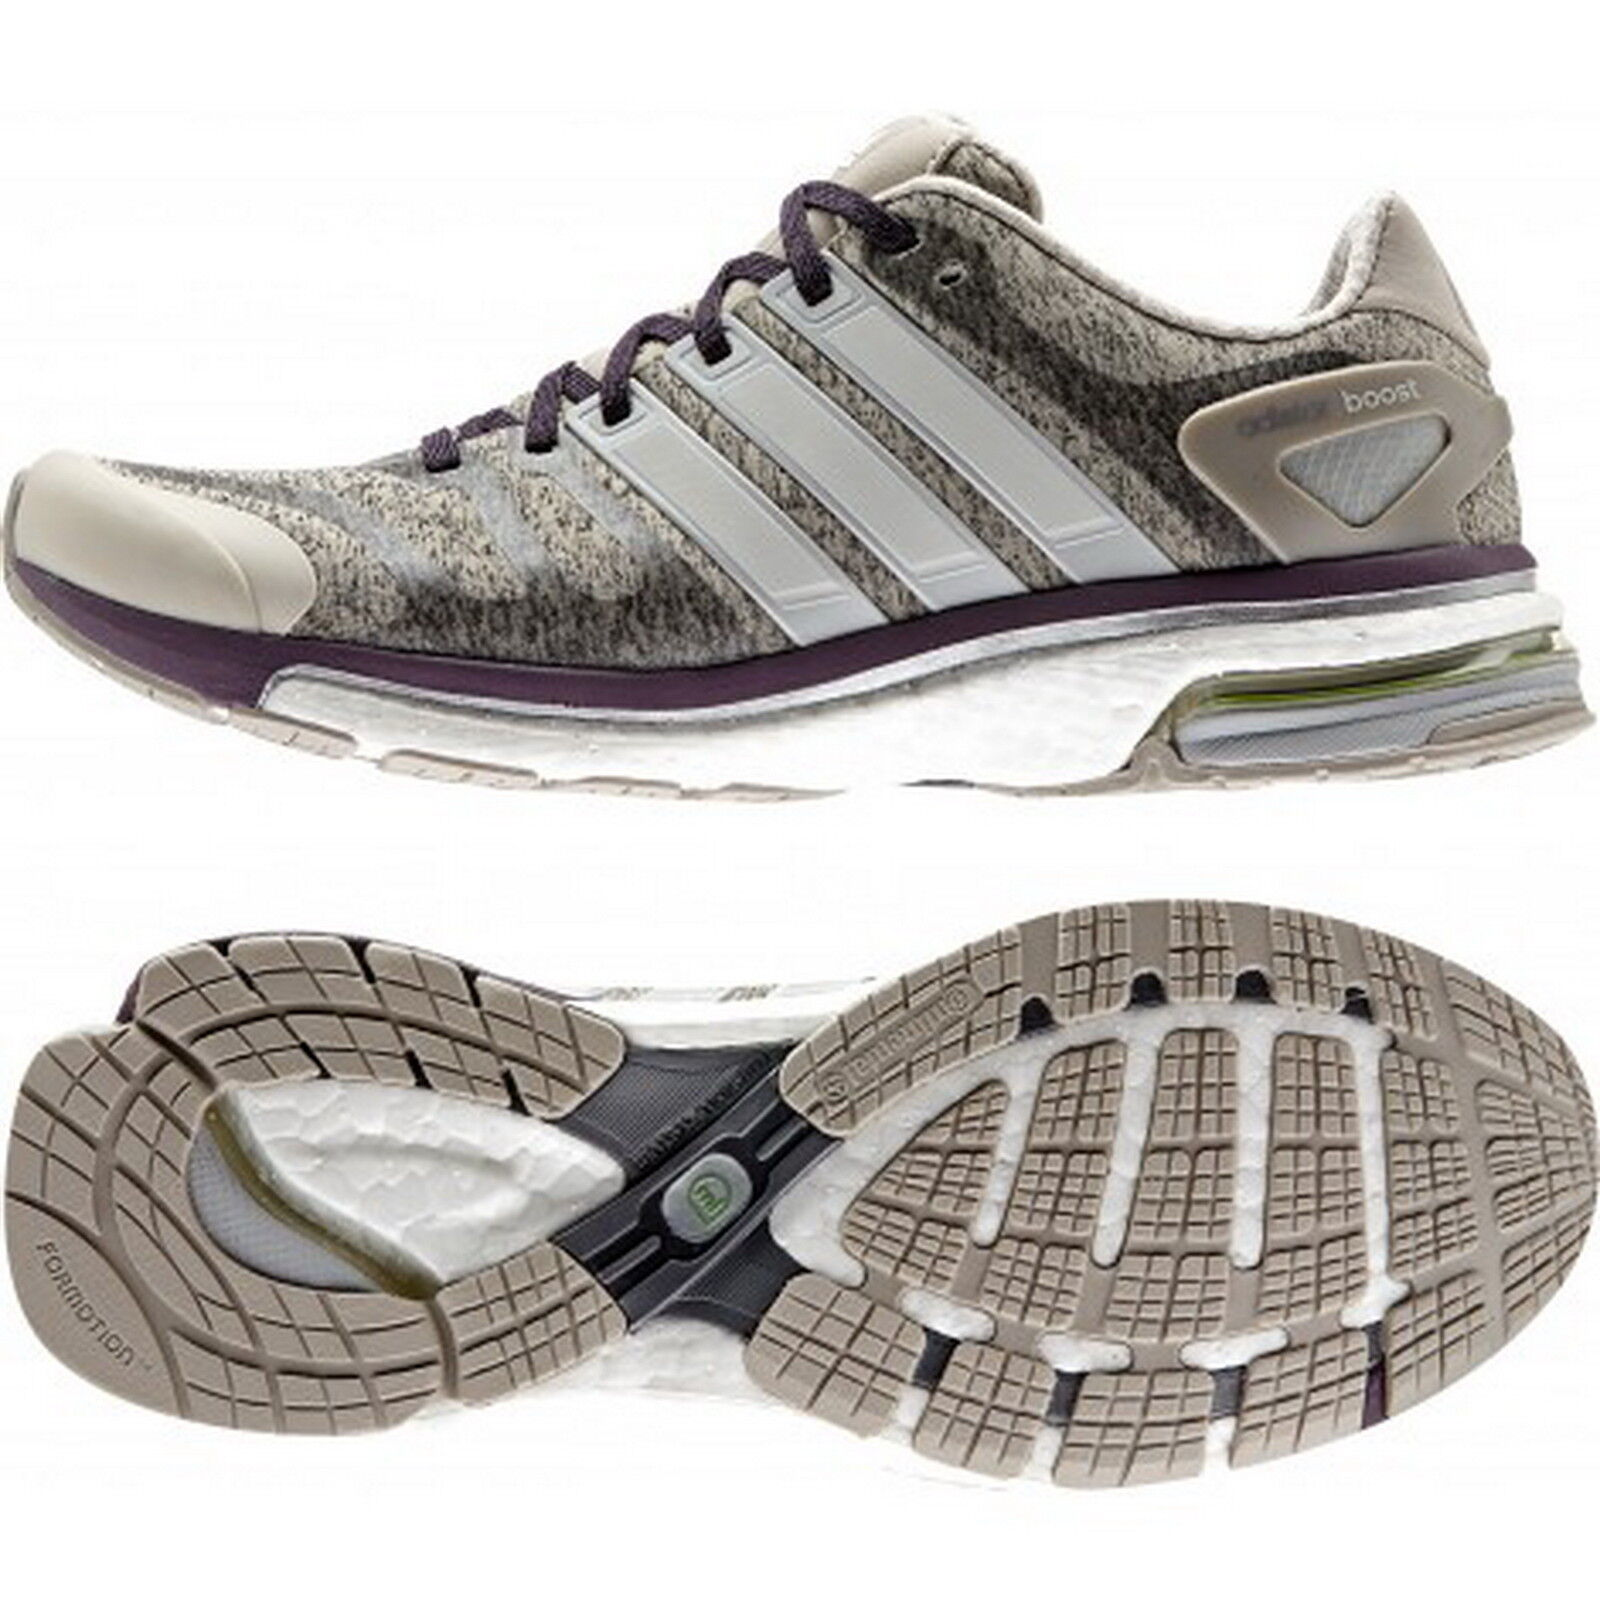 Adidas Adistar Heather Boost Womens Running shoes s77592